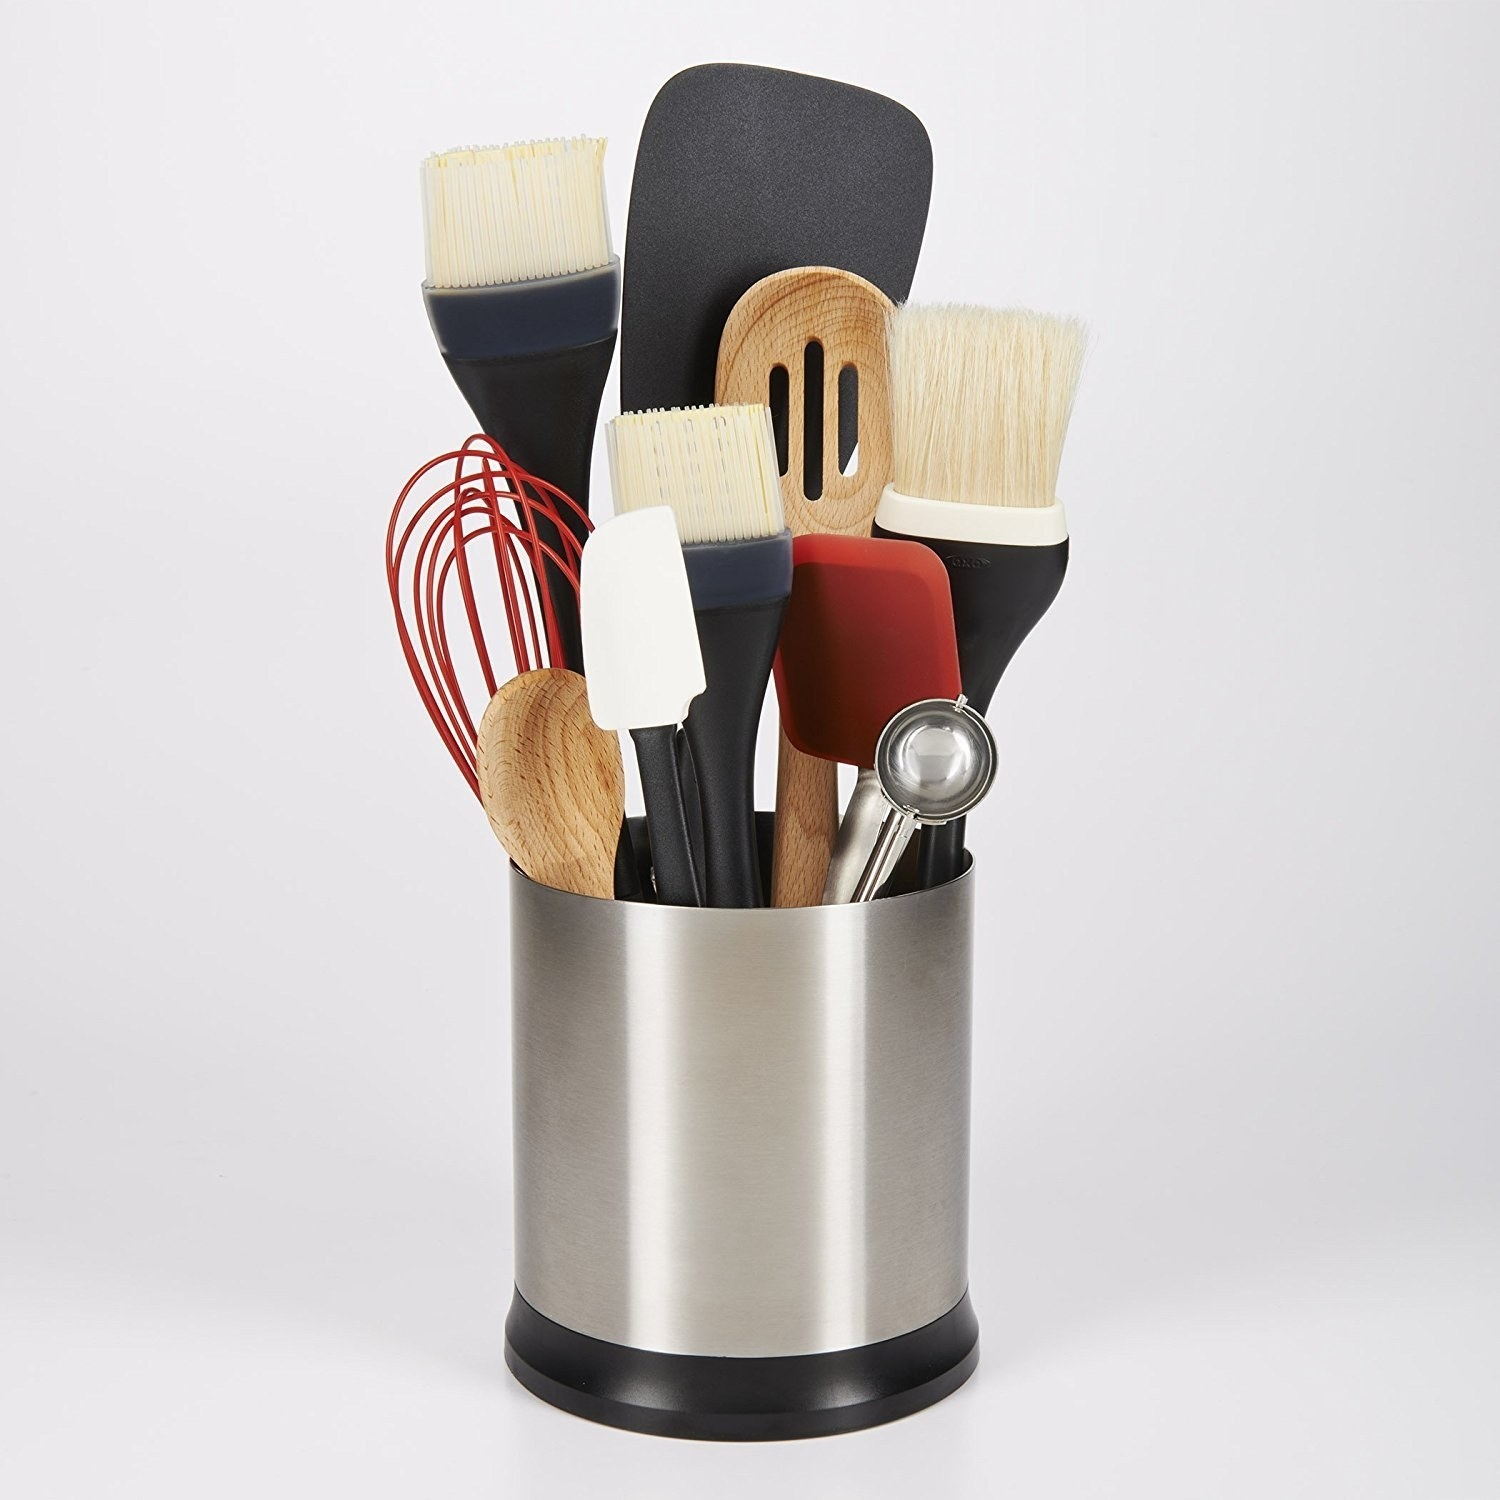 The utensil holder in stainless steel with a rubber bottom